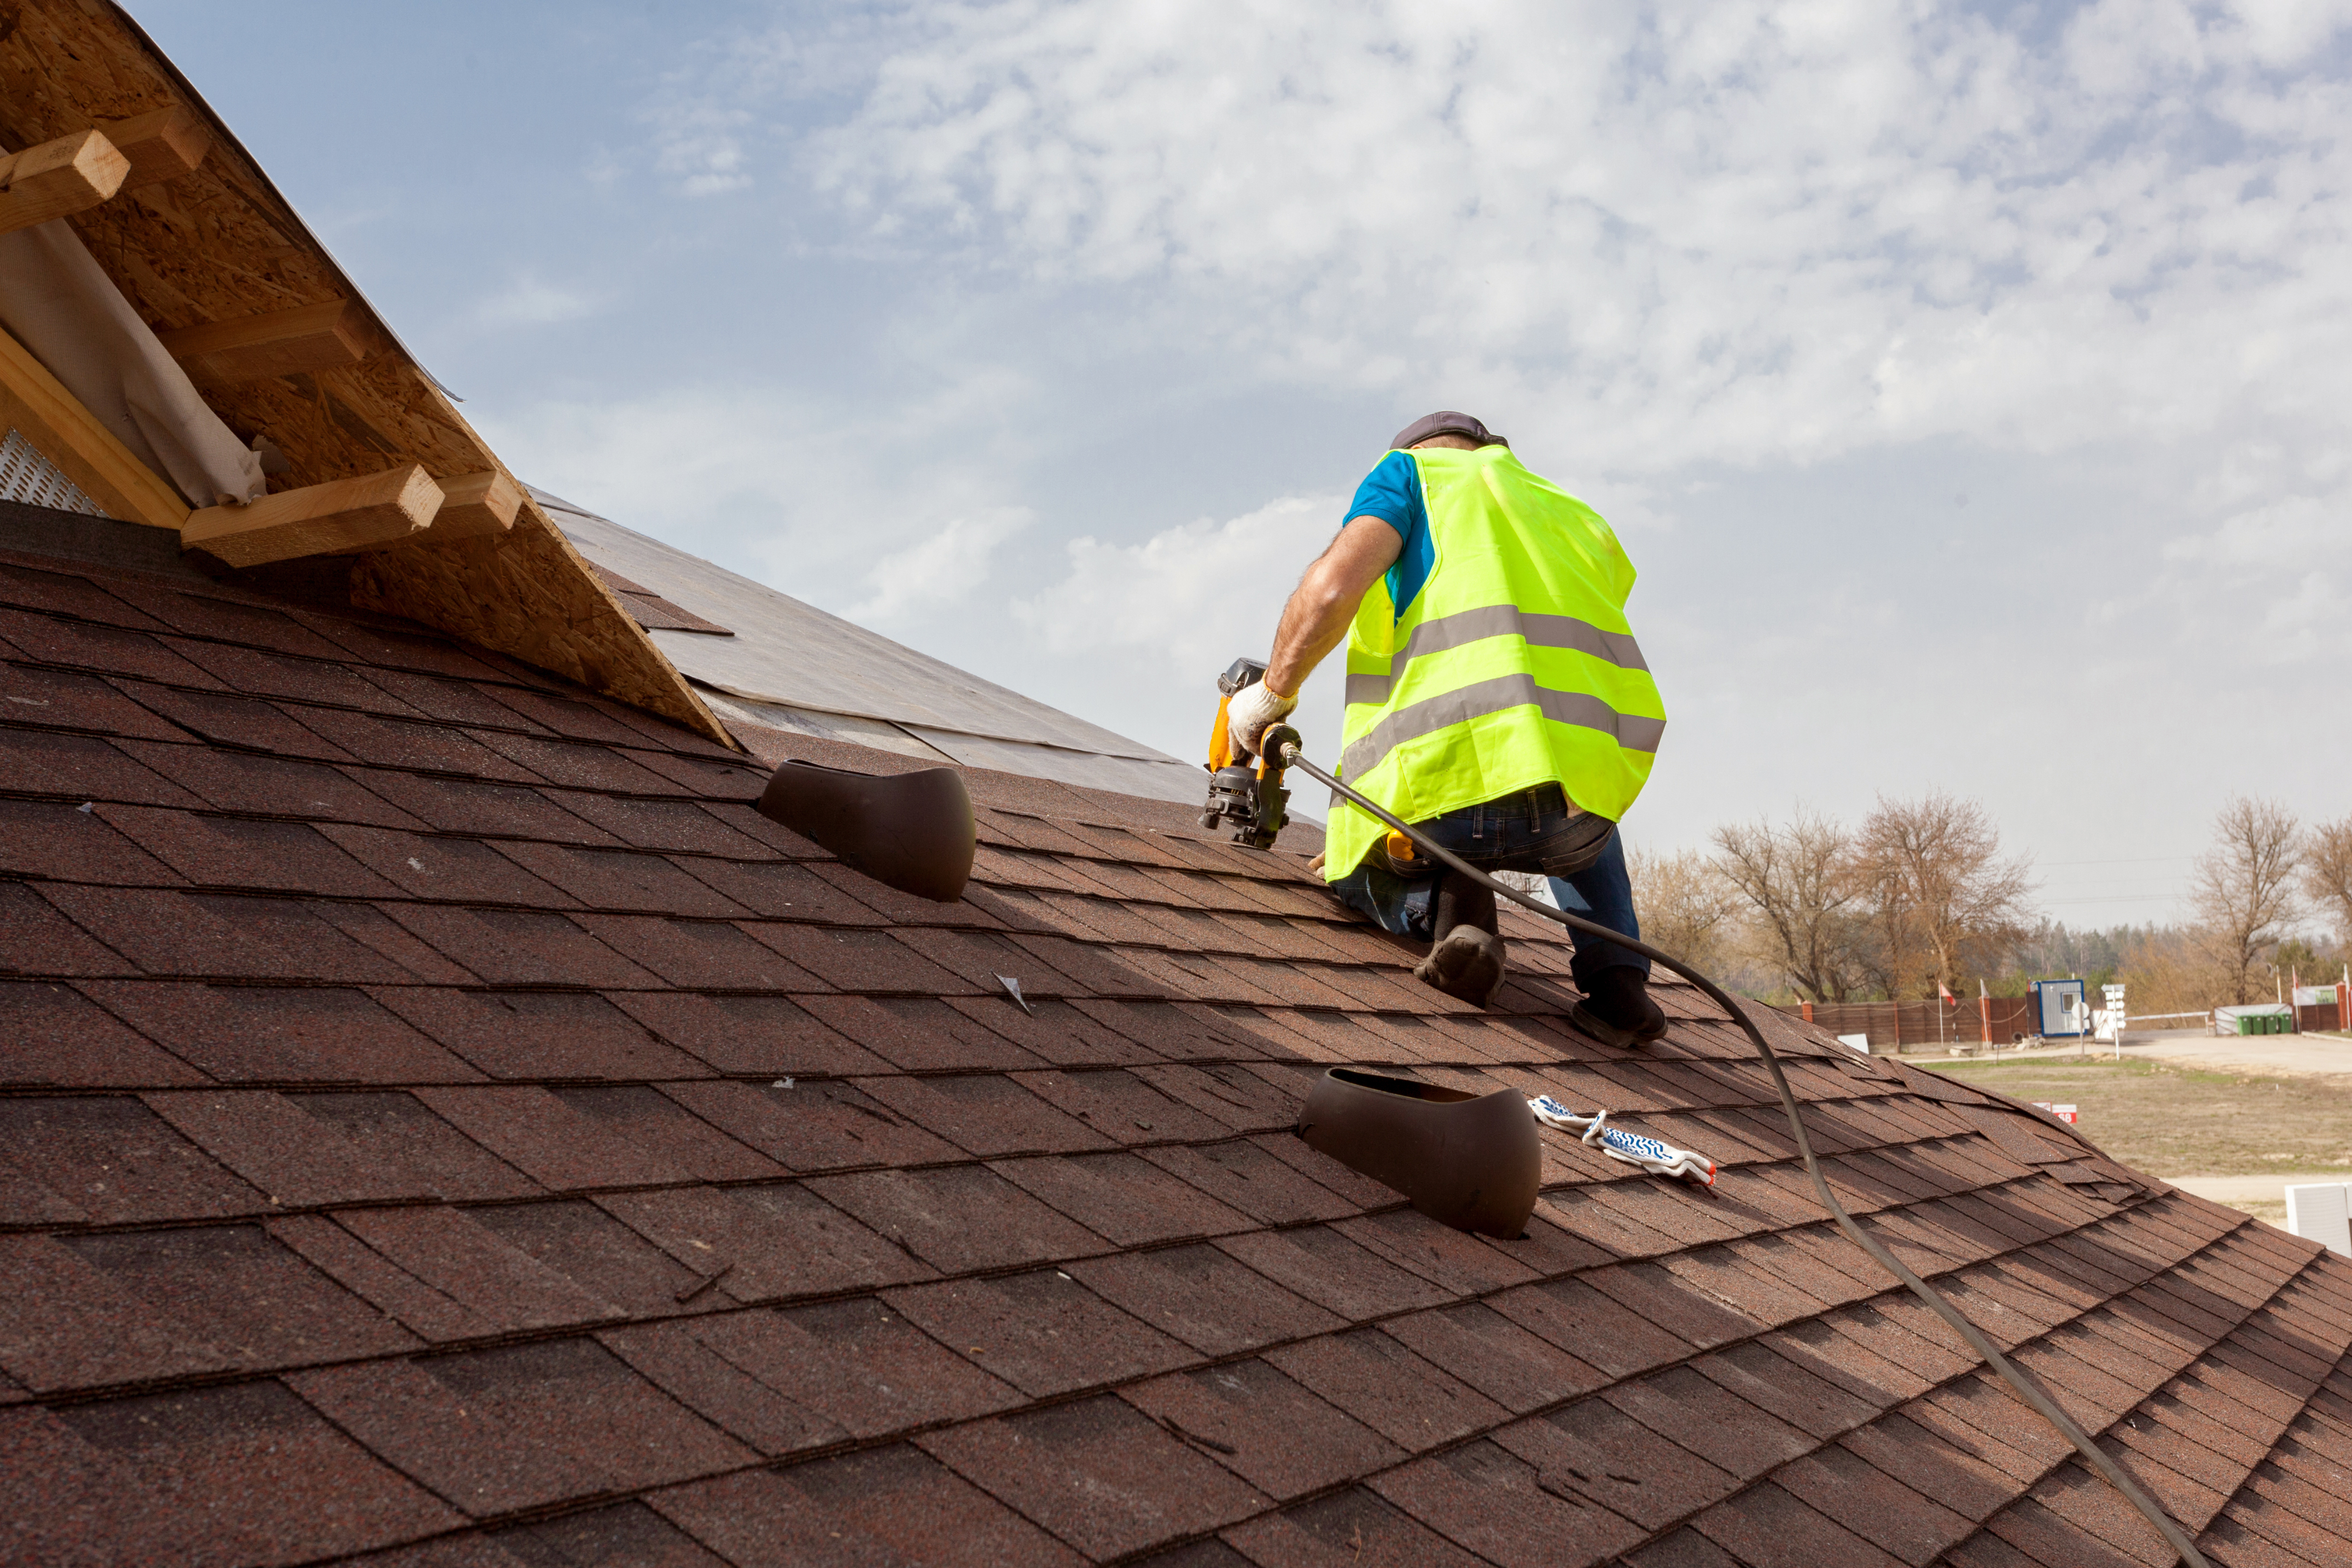 Roofing Permit: Why Would That Be Important?